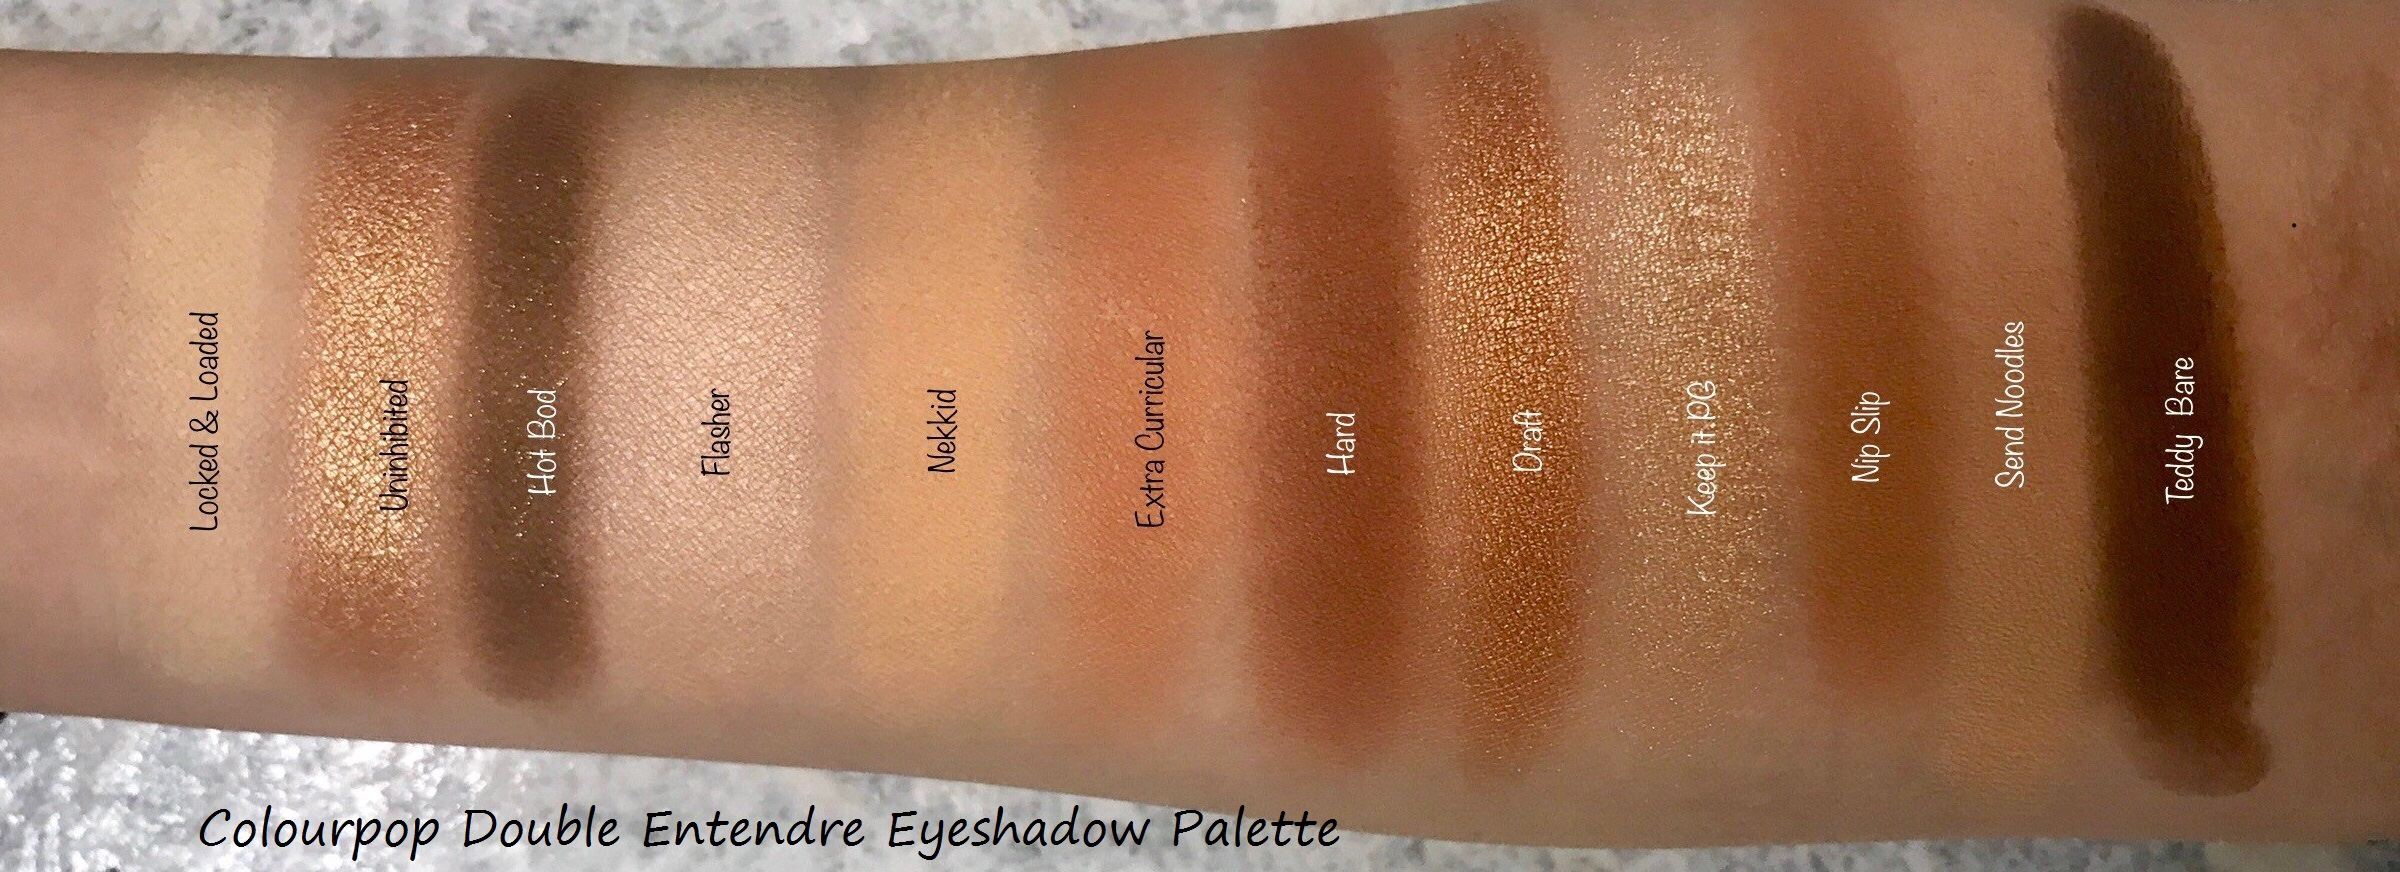 Colourpop Double Entendre Eyeshadow Palette Swatch And